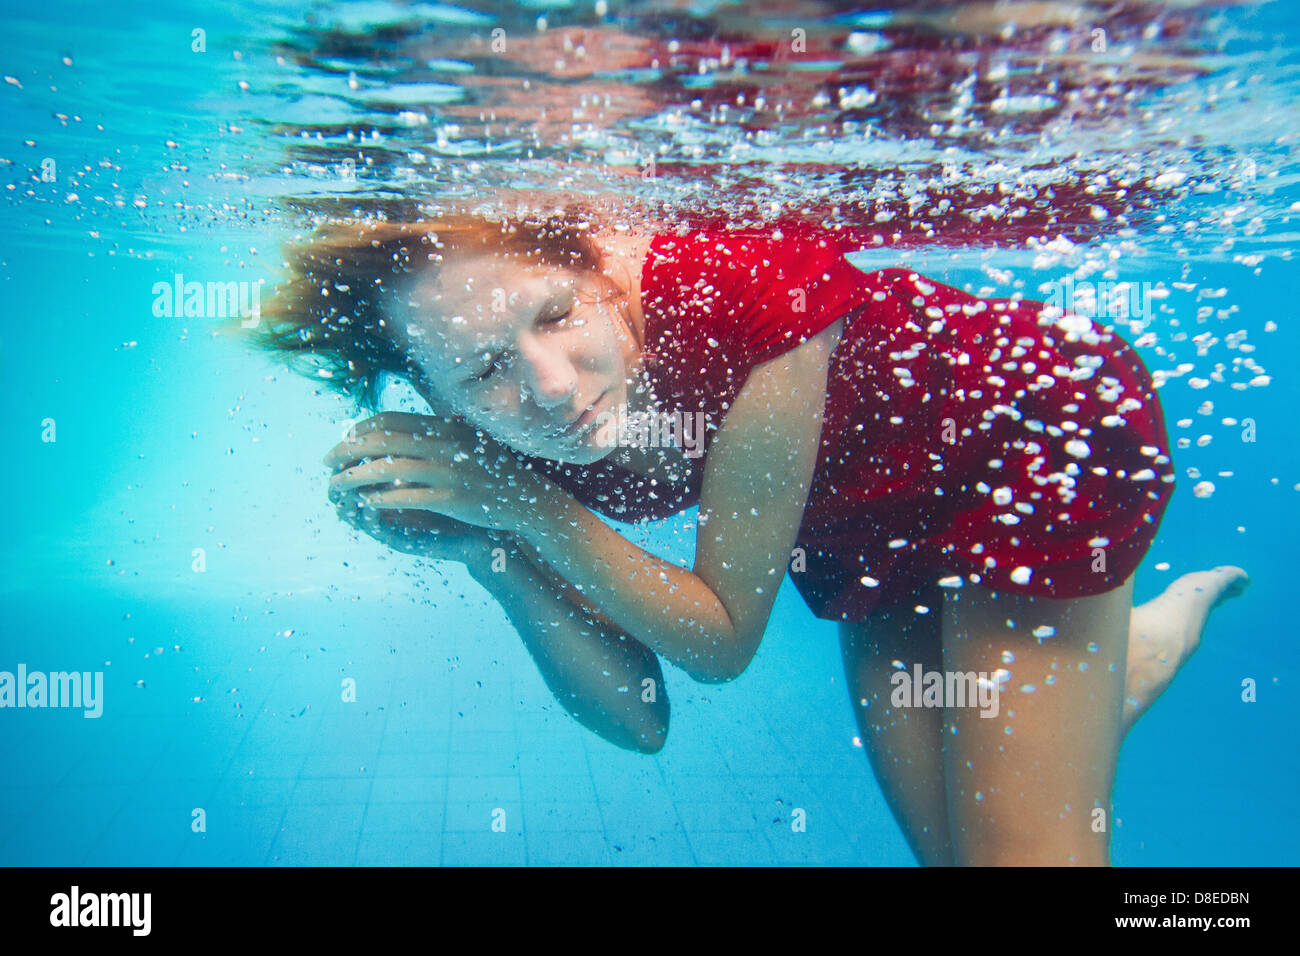 imagination, underwater portrait of woman in red dress - Stock Image